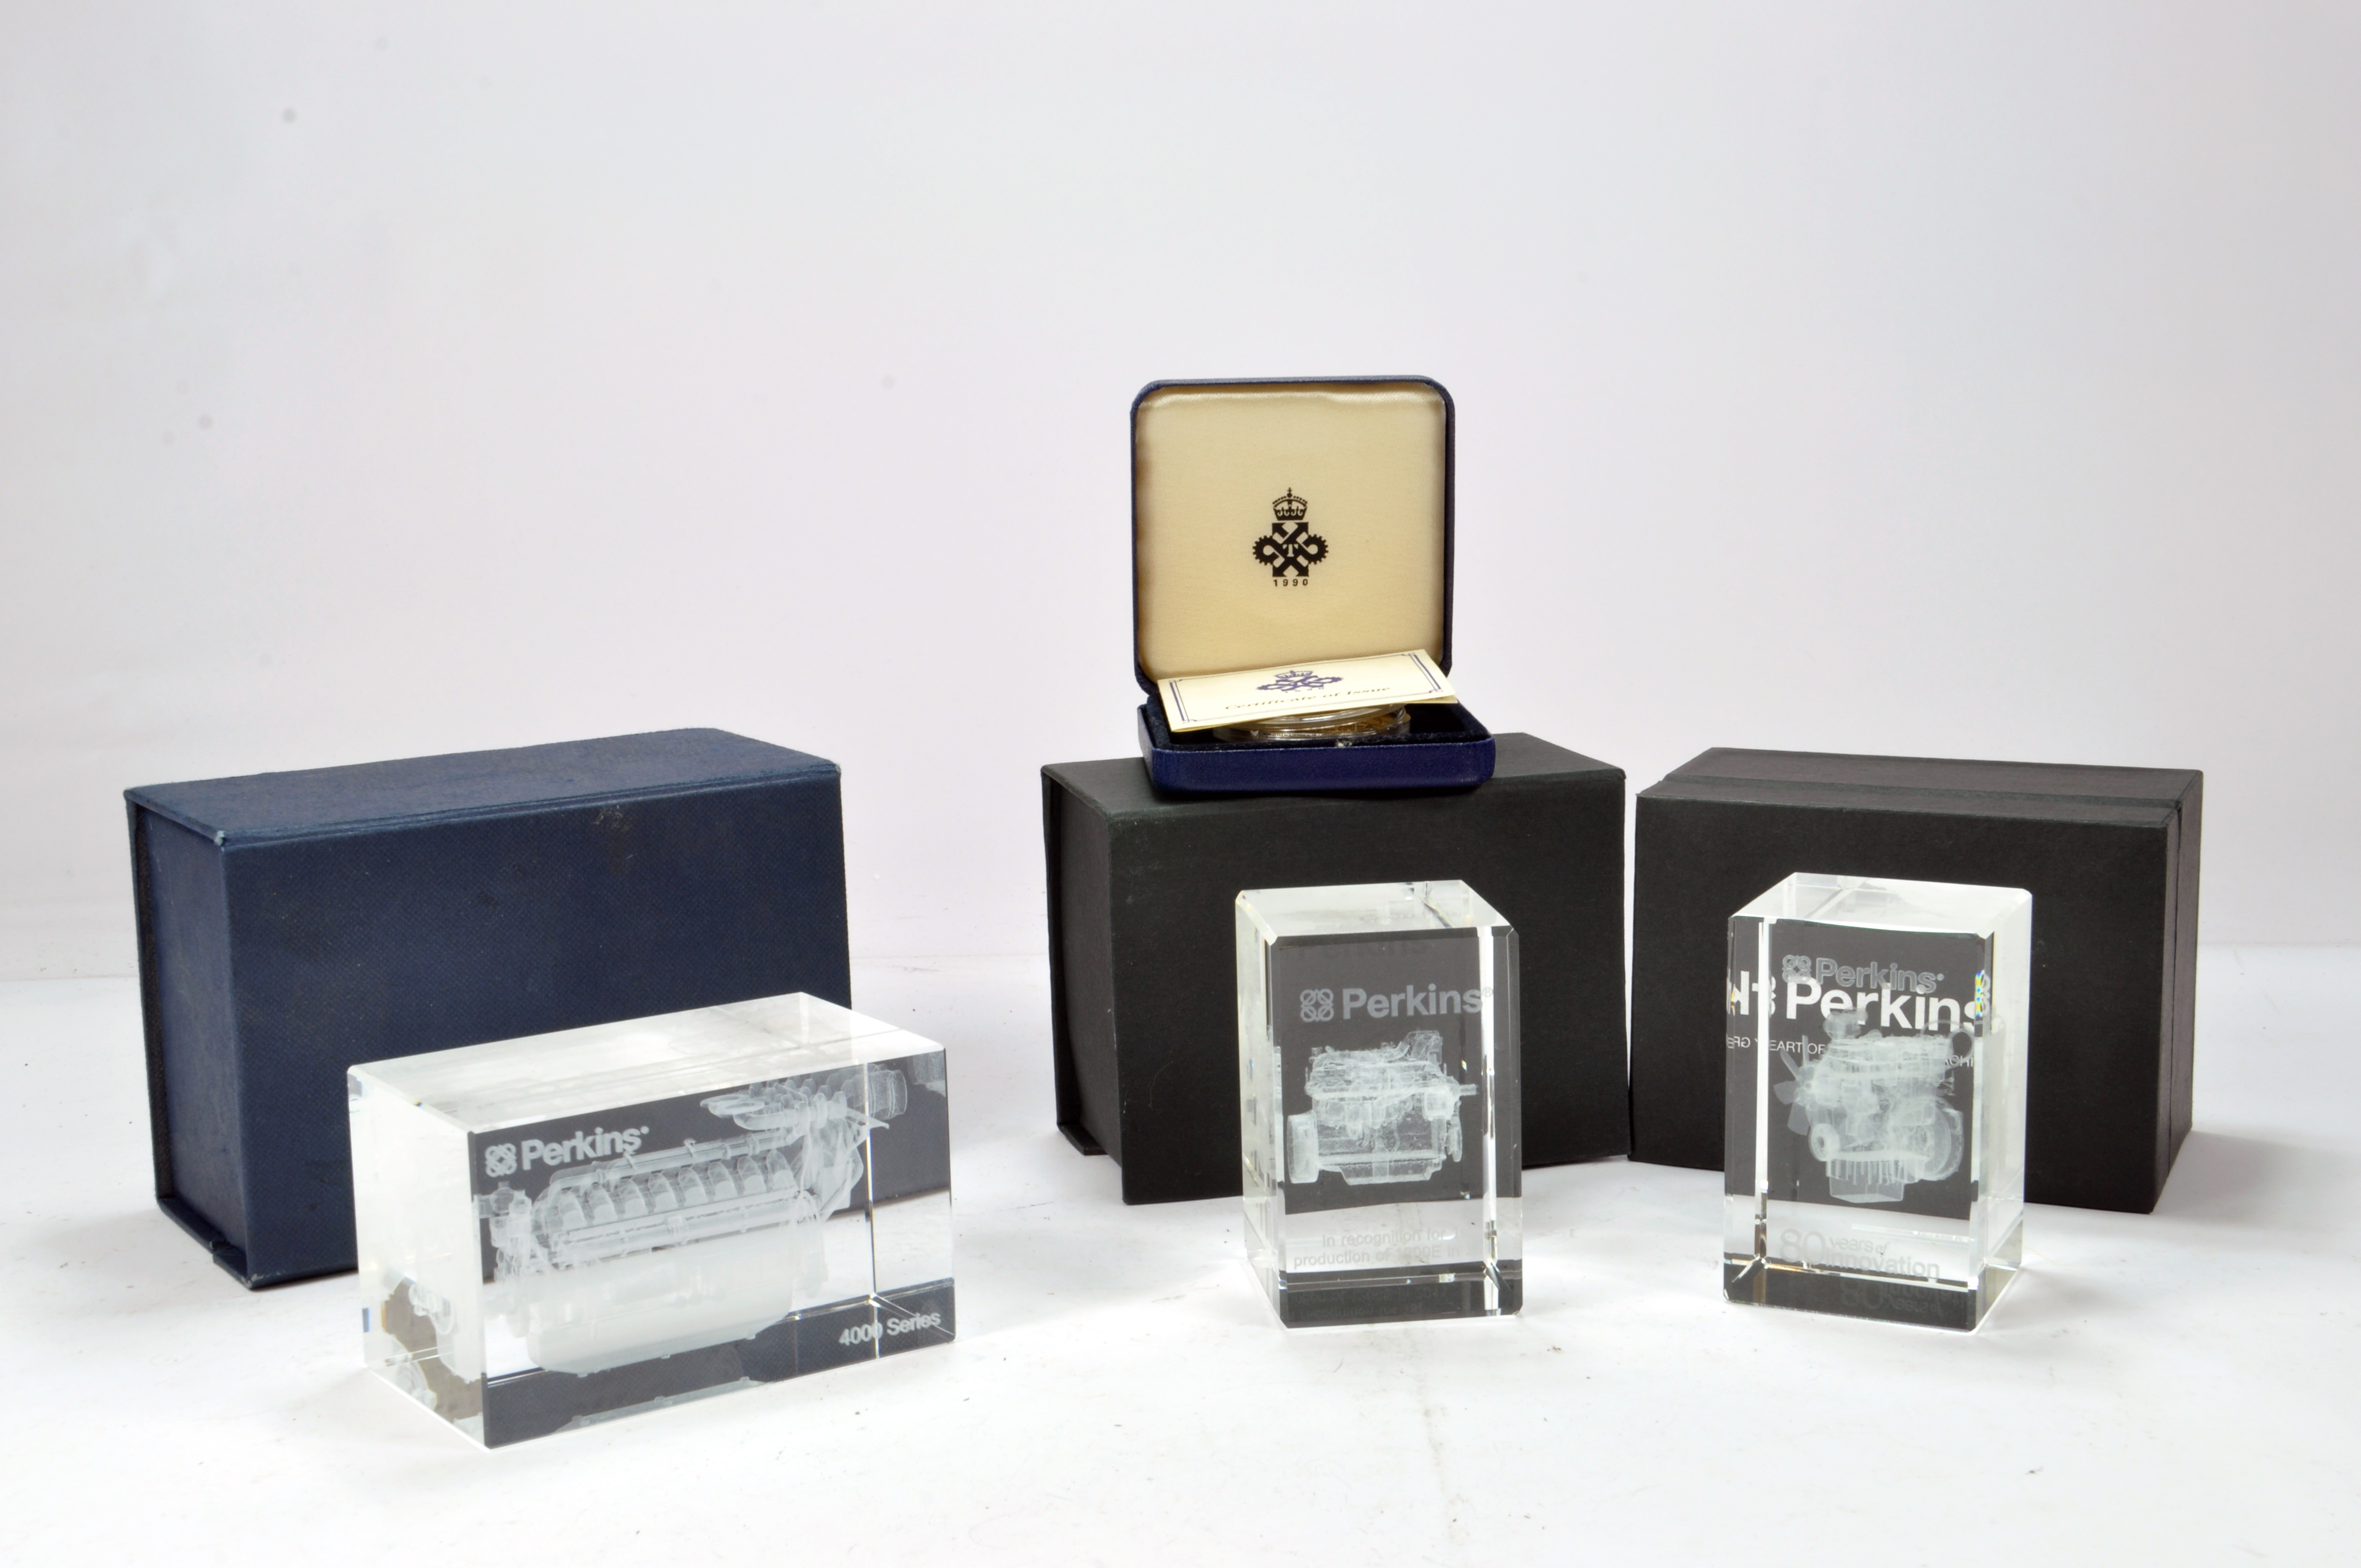 Lot 1137 - Interesting group of glass etched Perkins Engine Commemorative weights each with a different